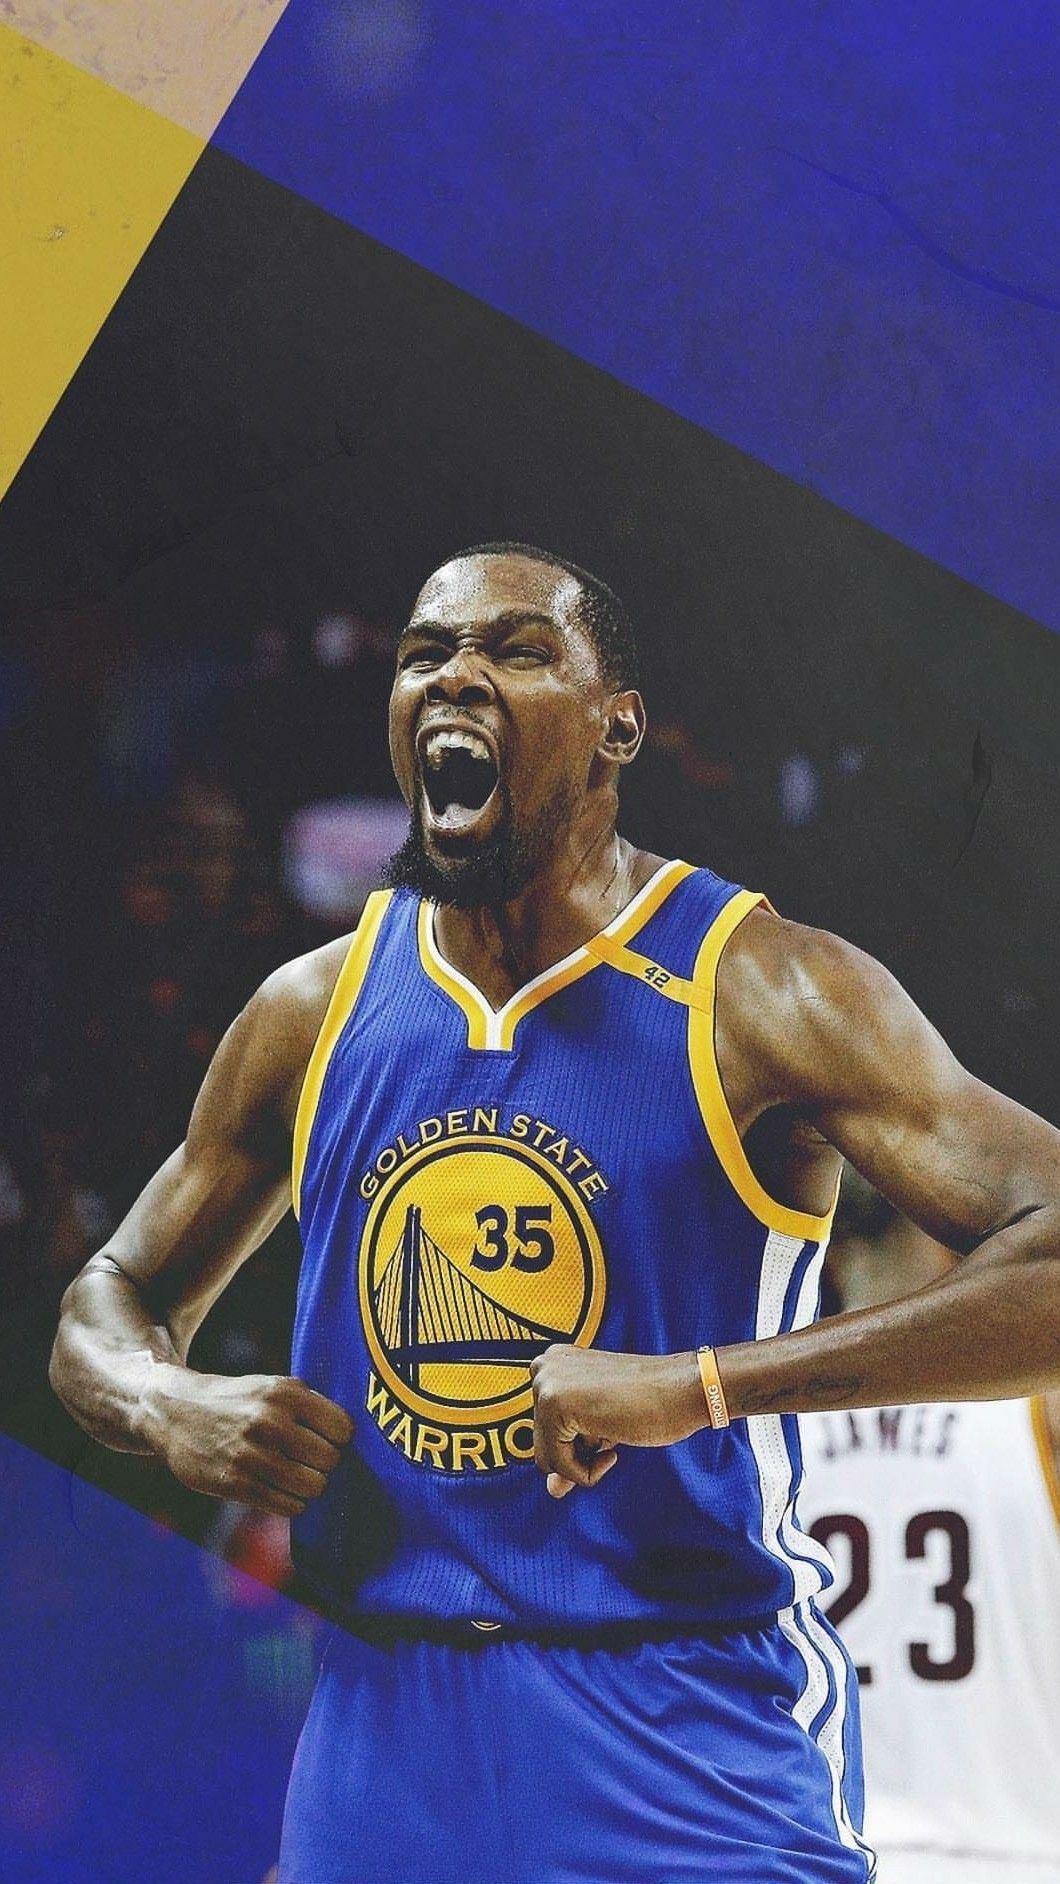 Kevin Durant Iphone Wallpaper Brooklyn : 1001 Ideas For A ...